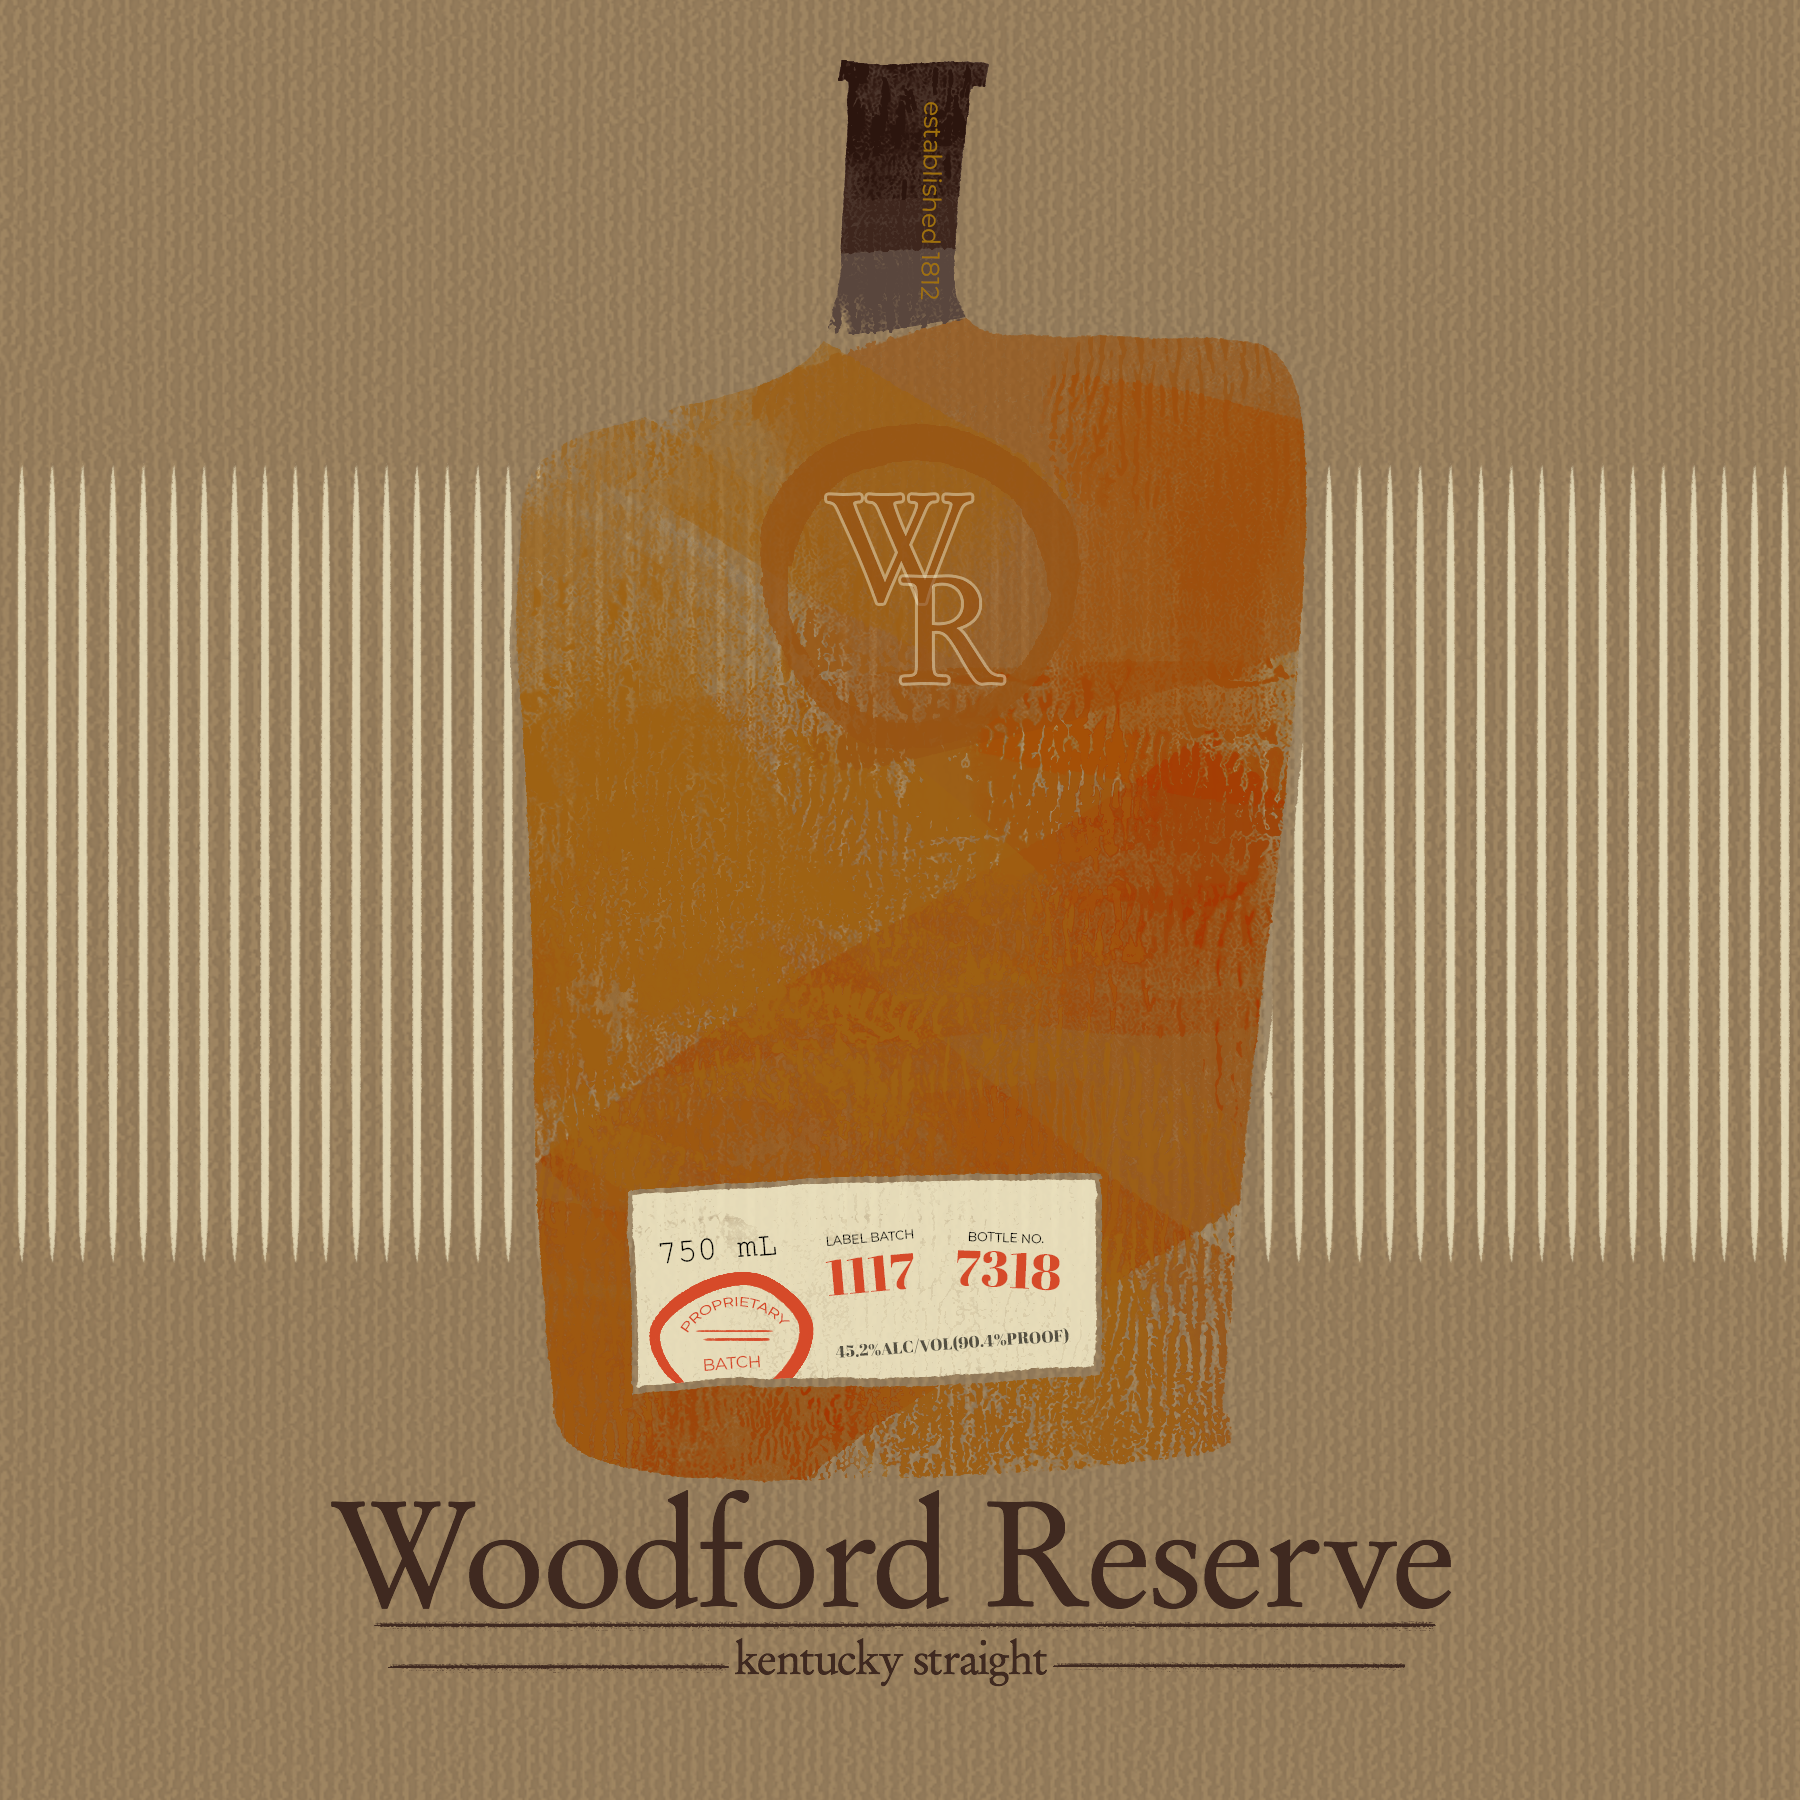 Reconceptualization of the Woodford Reserve Brand. Masculine with a sense of whimsy, this is designed to carry a global, yet retro feel.